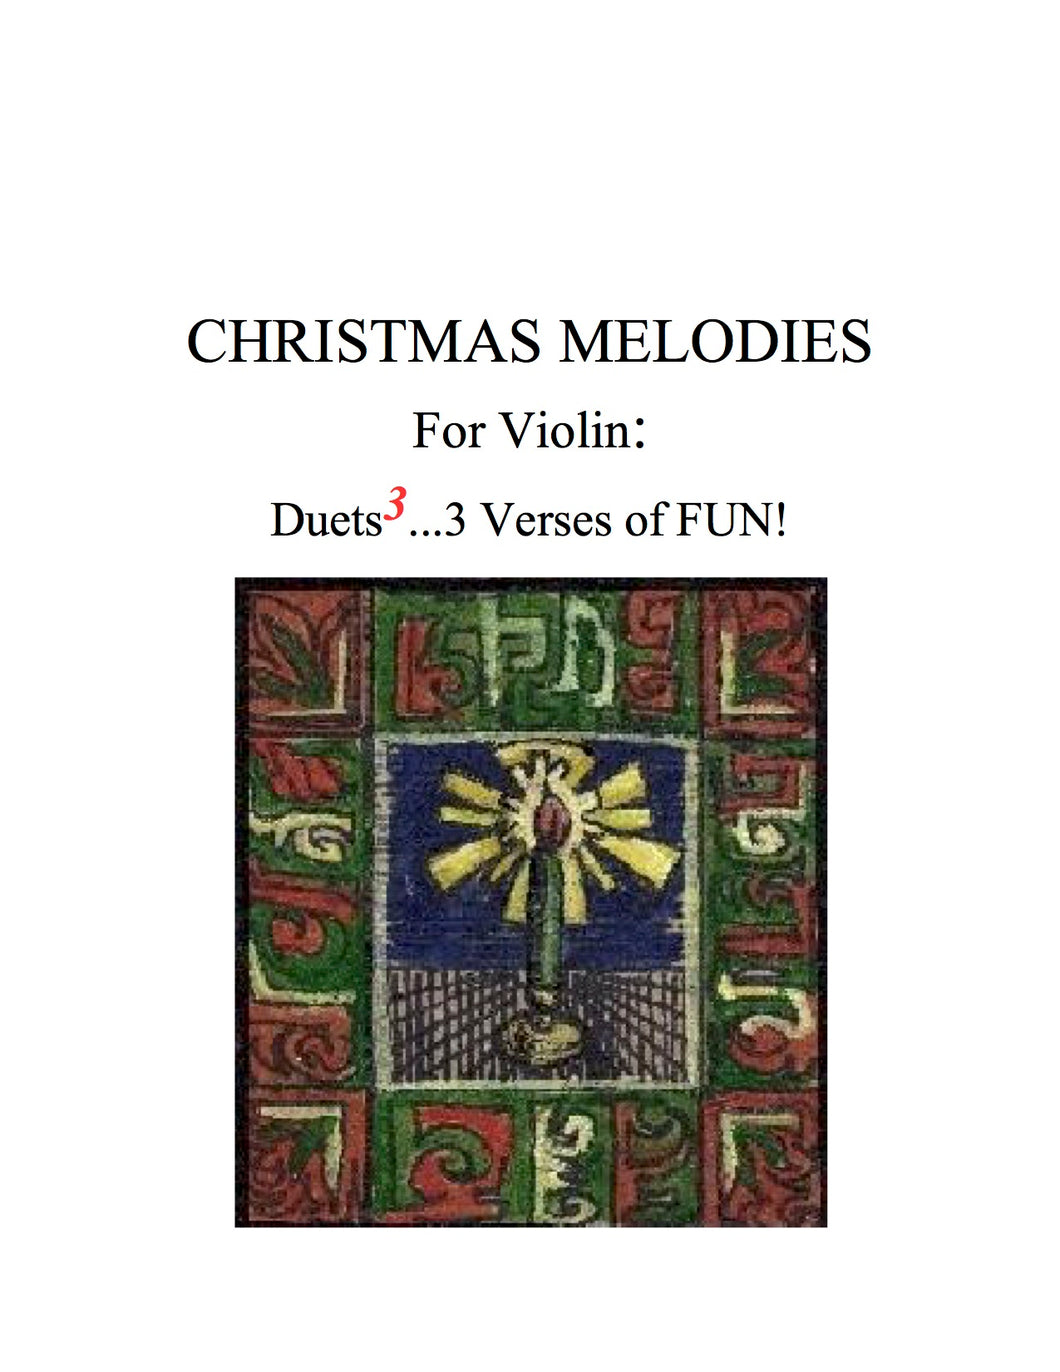 031 - PDF BUNDLE - Christmas Melodies For Violin: (A) Duets to the 3rd Power…3 Verses of FUN!